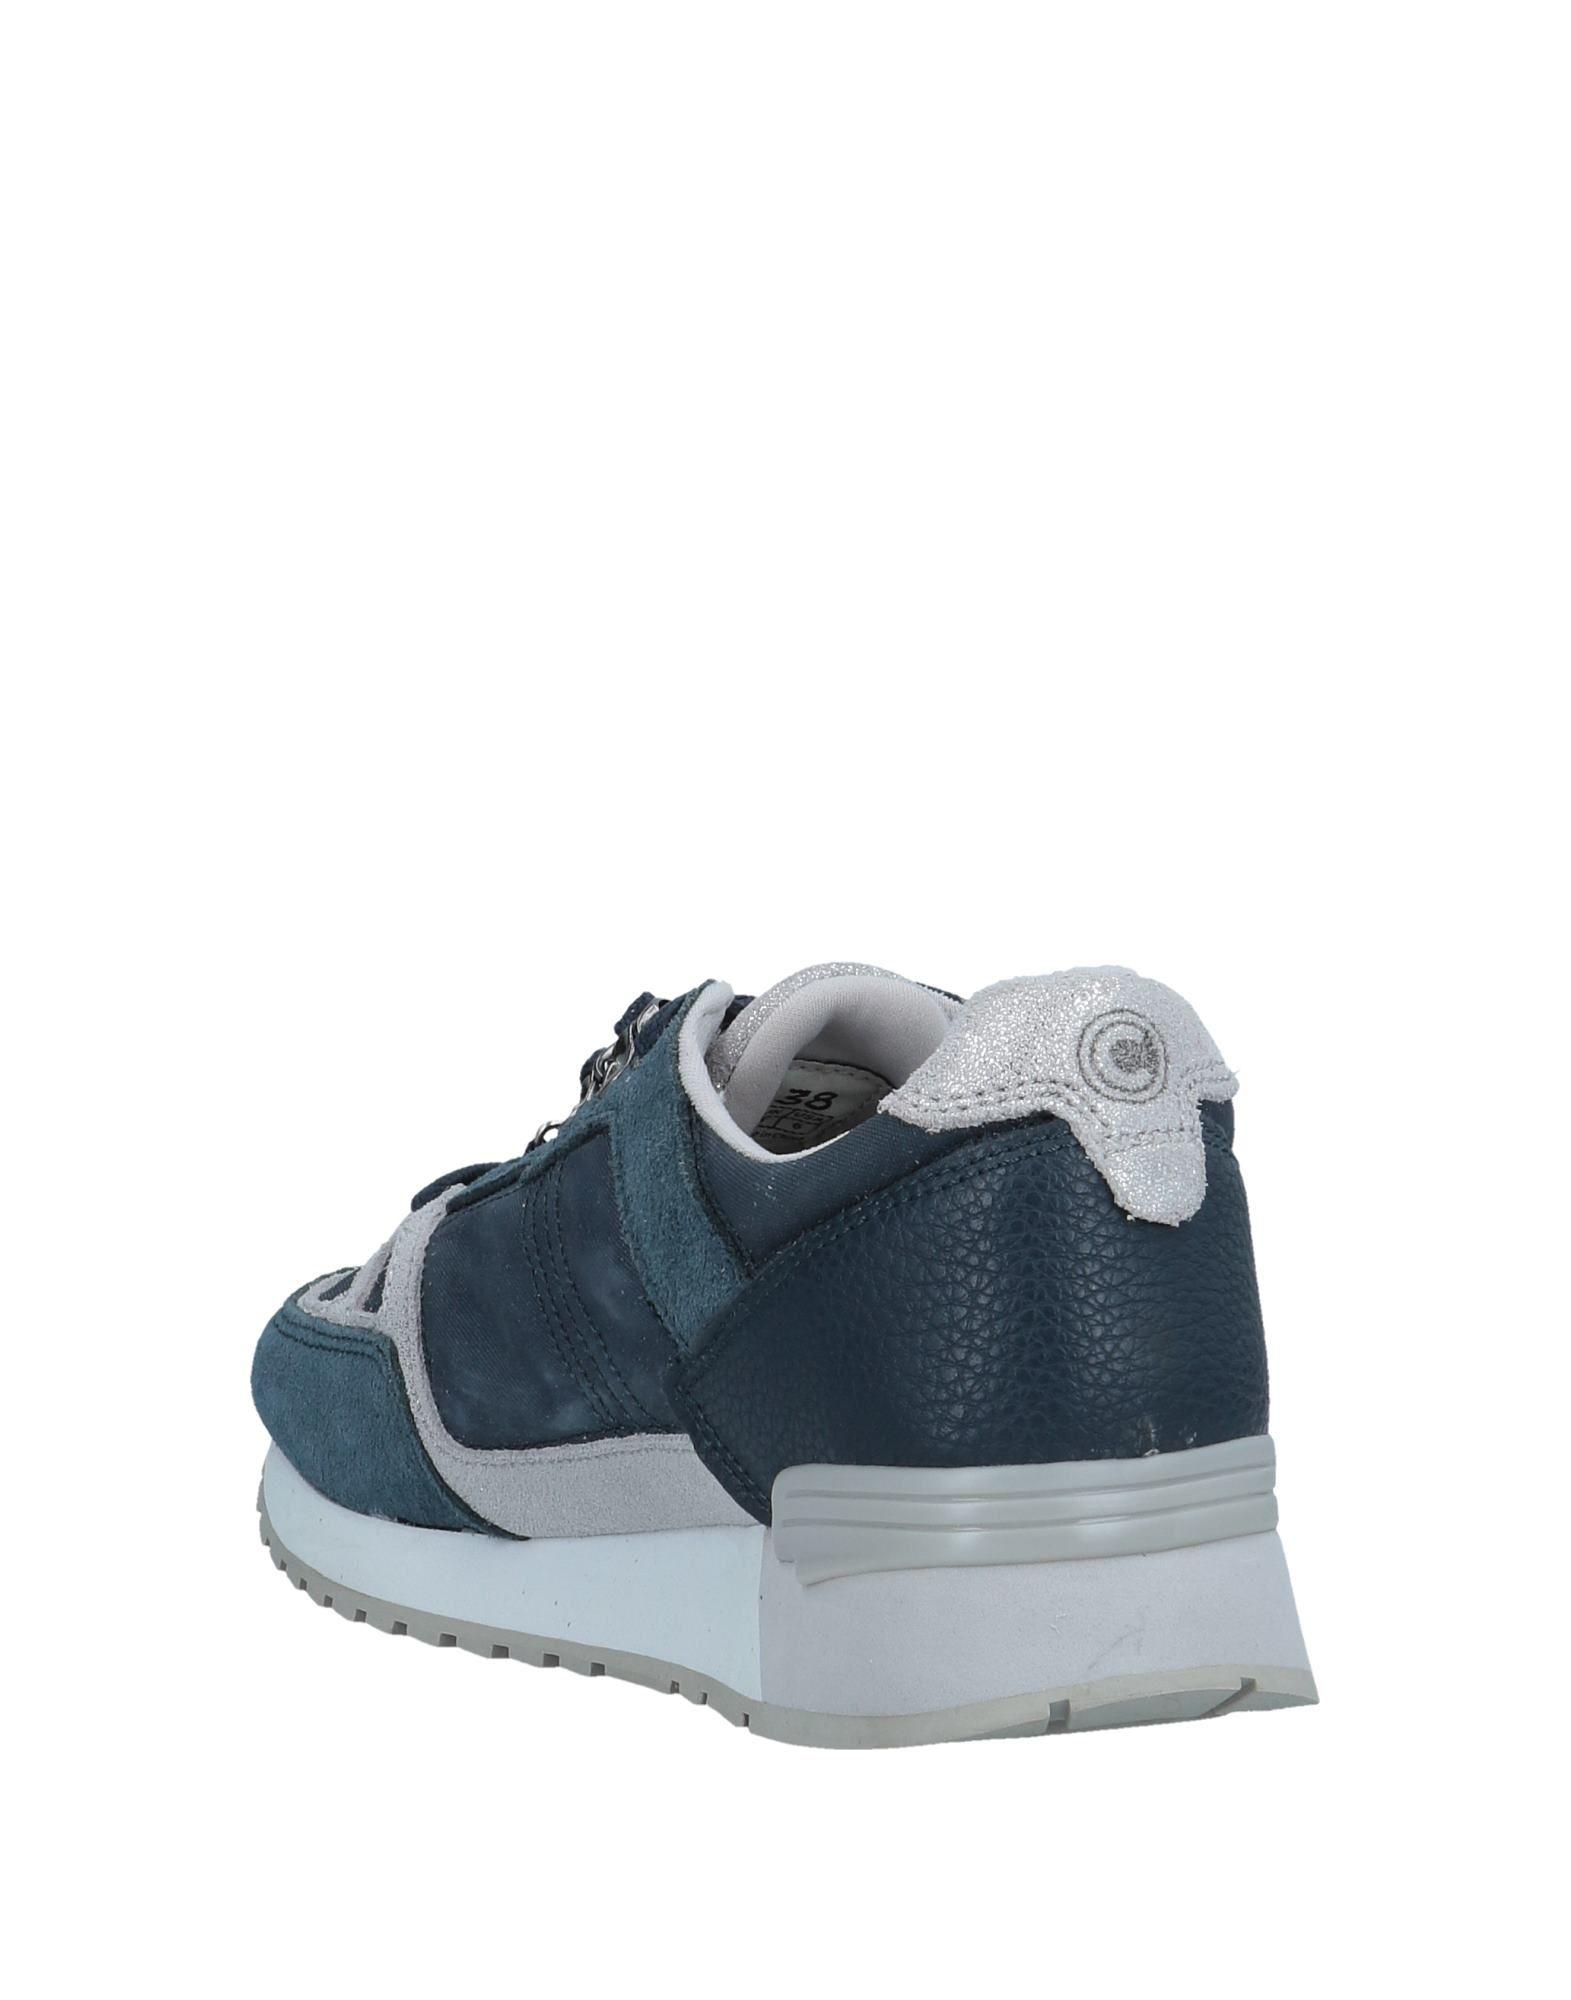 Colmar Canvas Low-tops & Sneakers in Slate Blue (Blue)